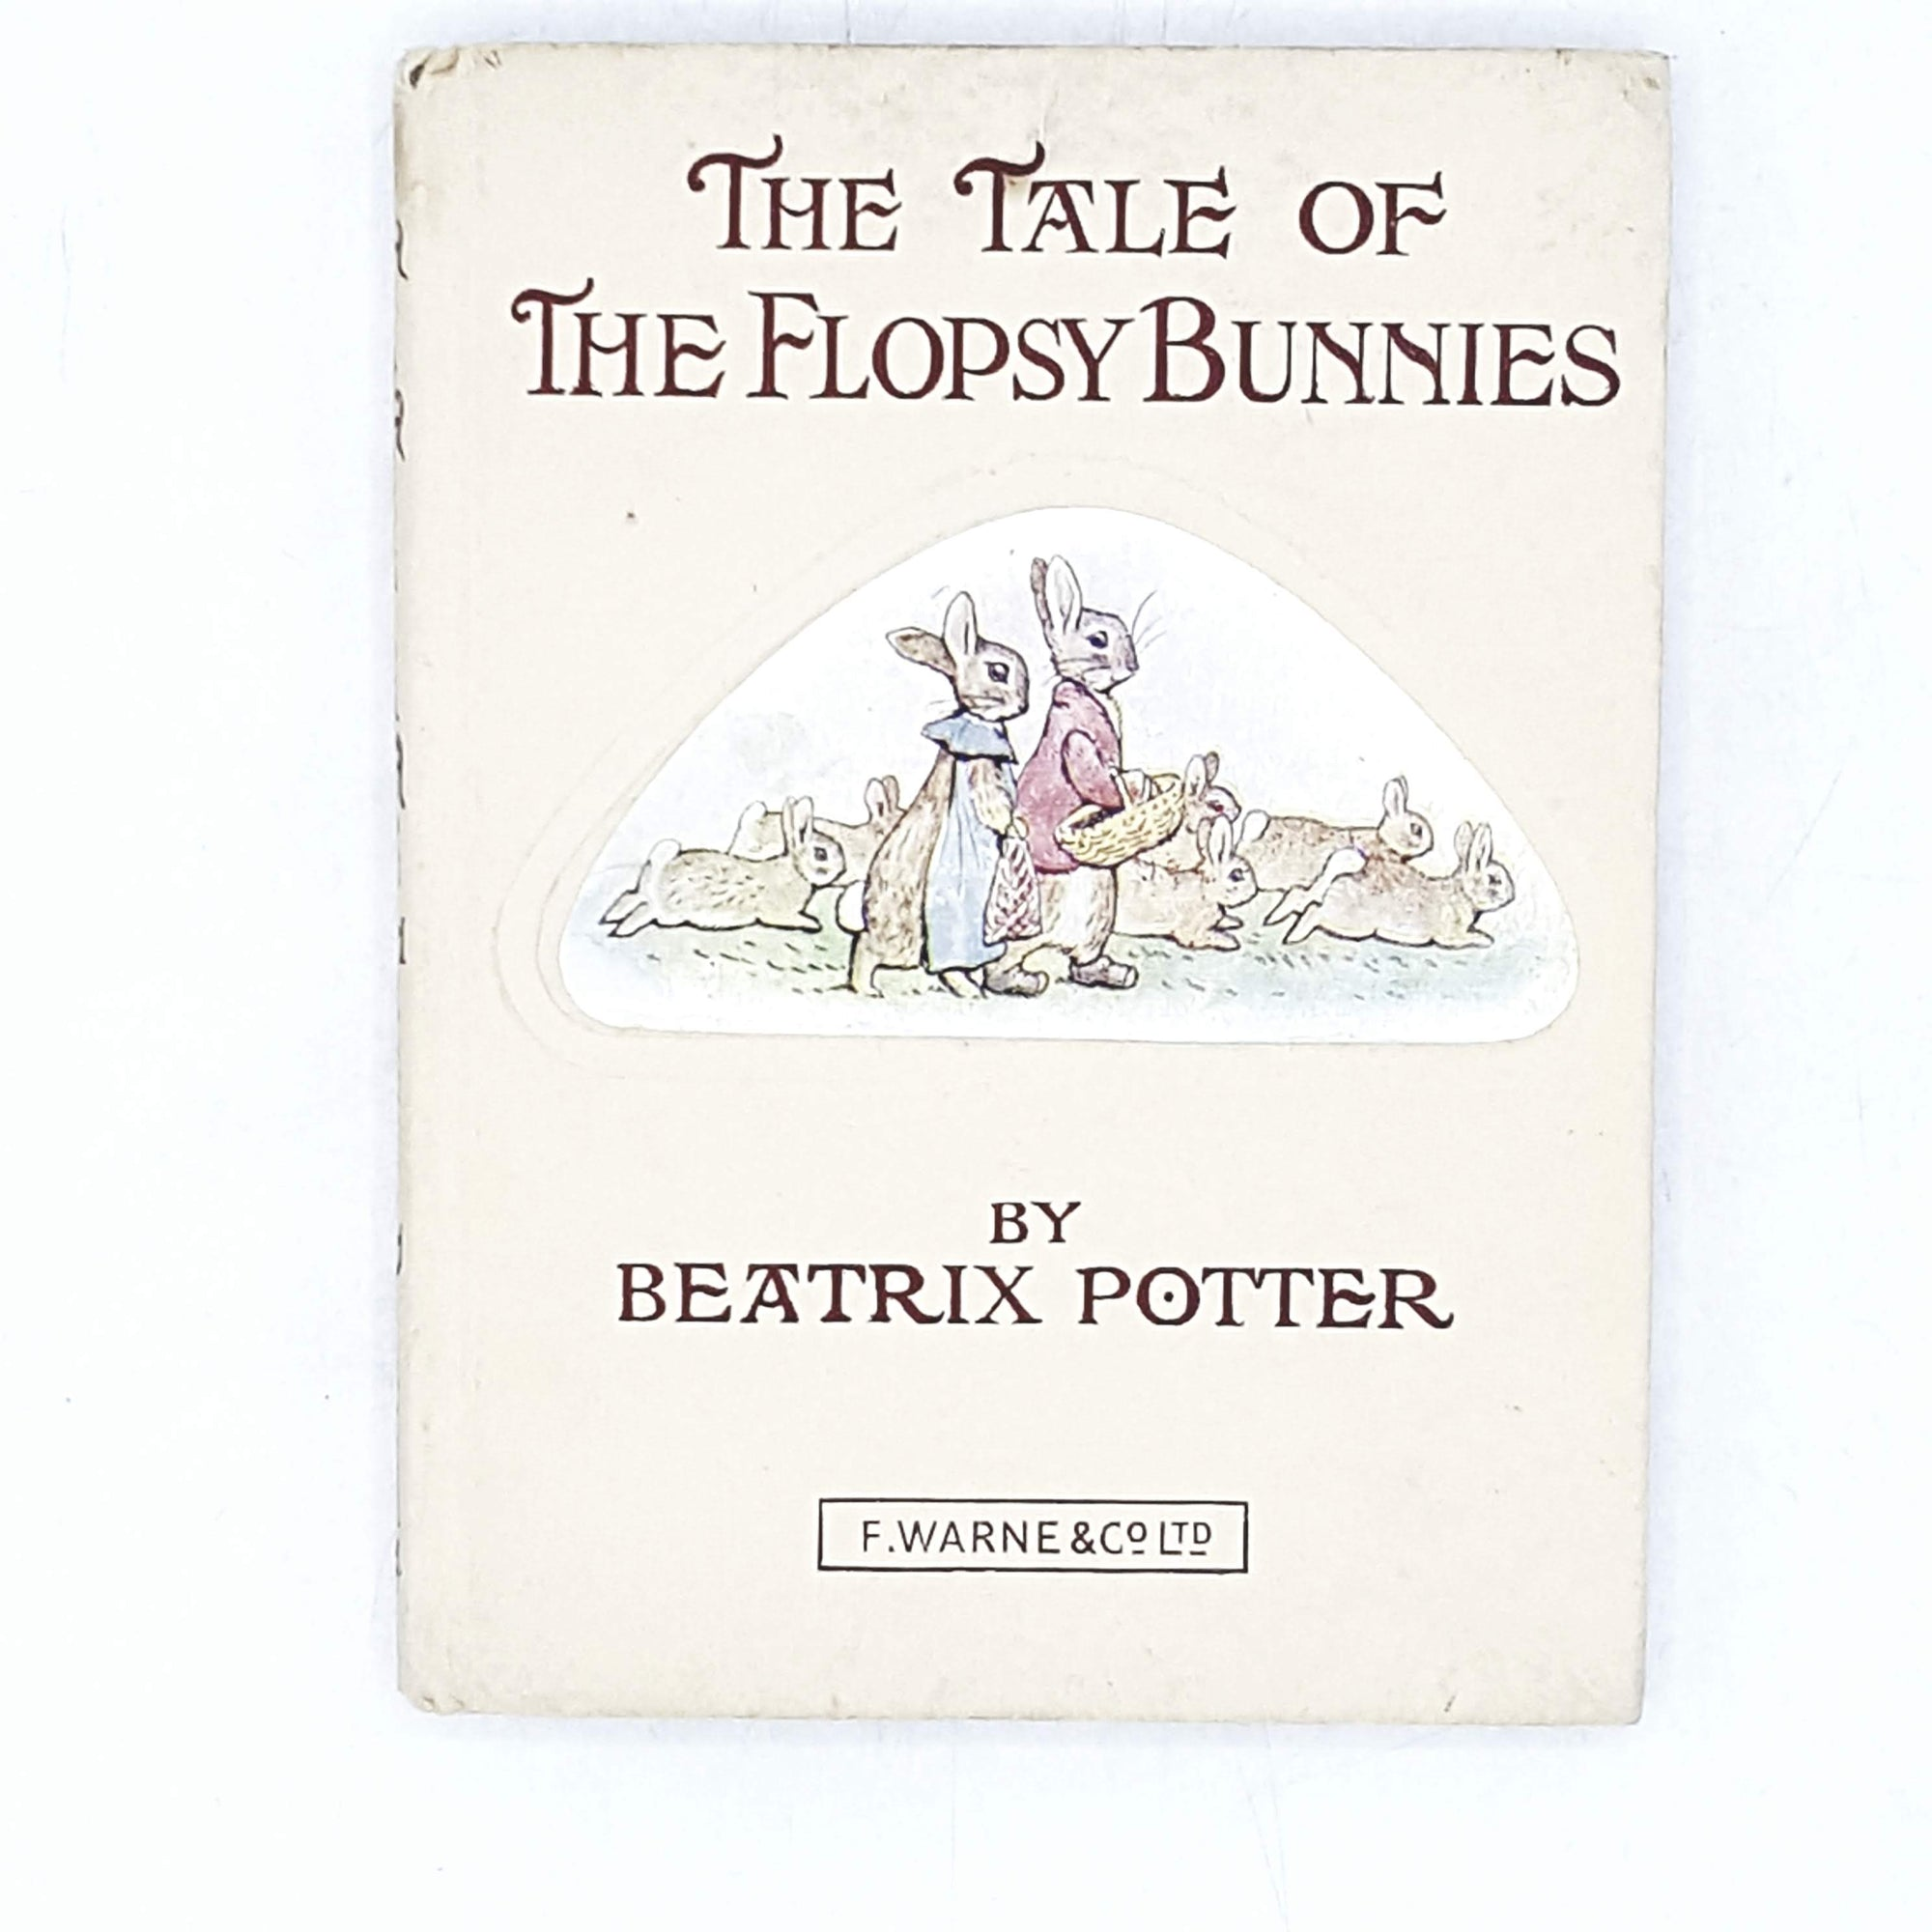 Beatrix Potter's The Tale of the Flopsy Bunnies